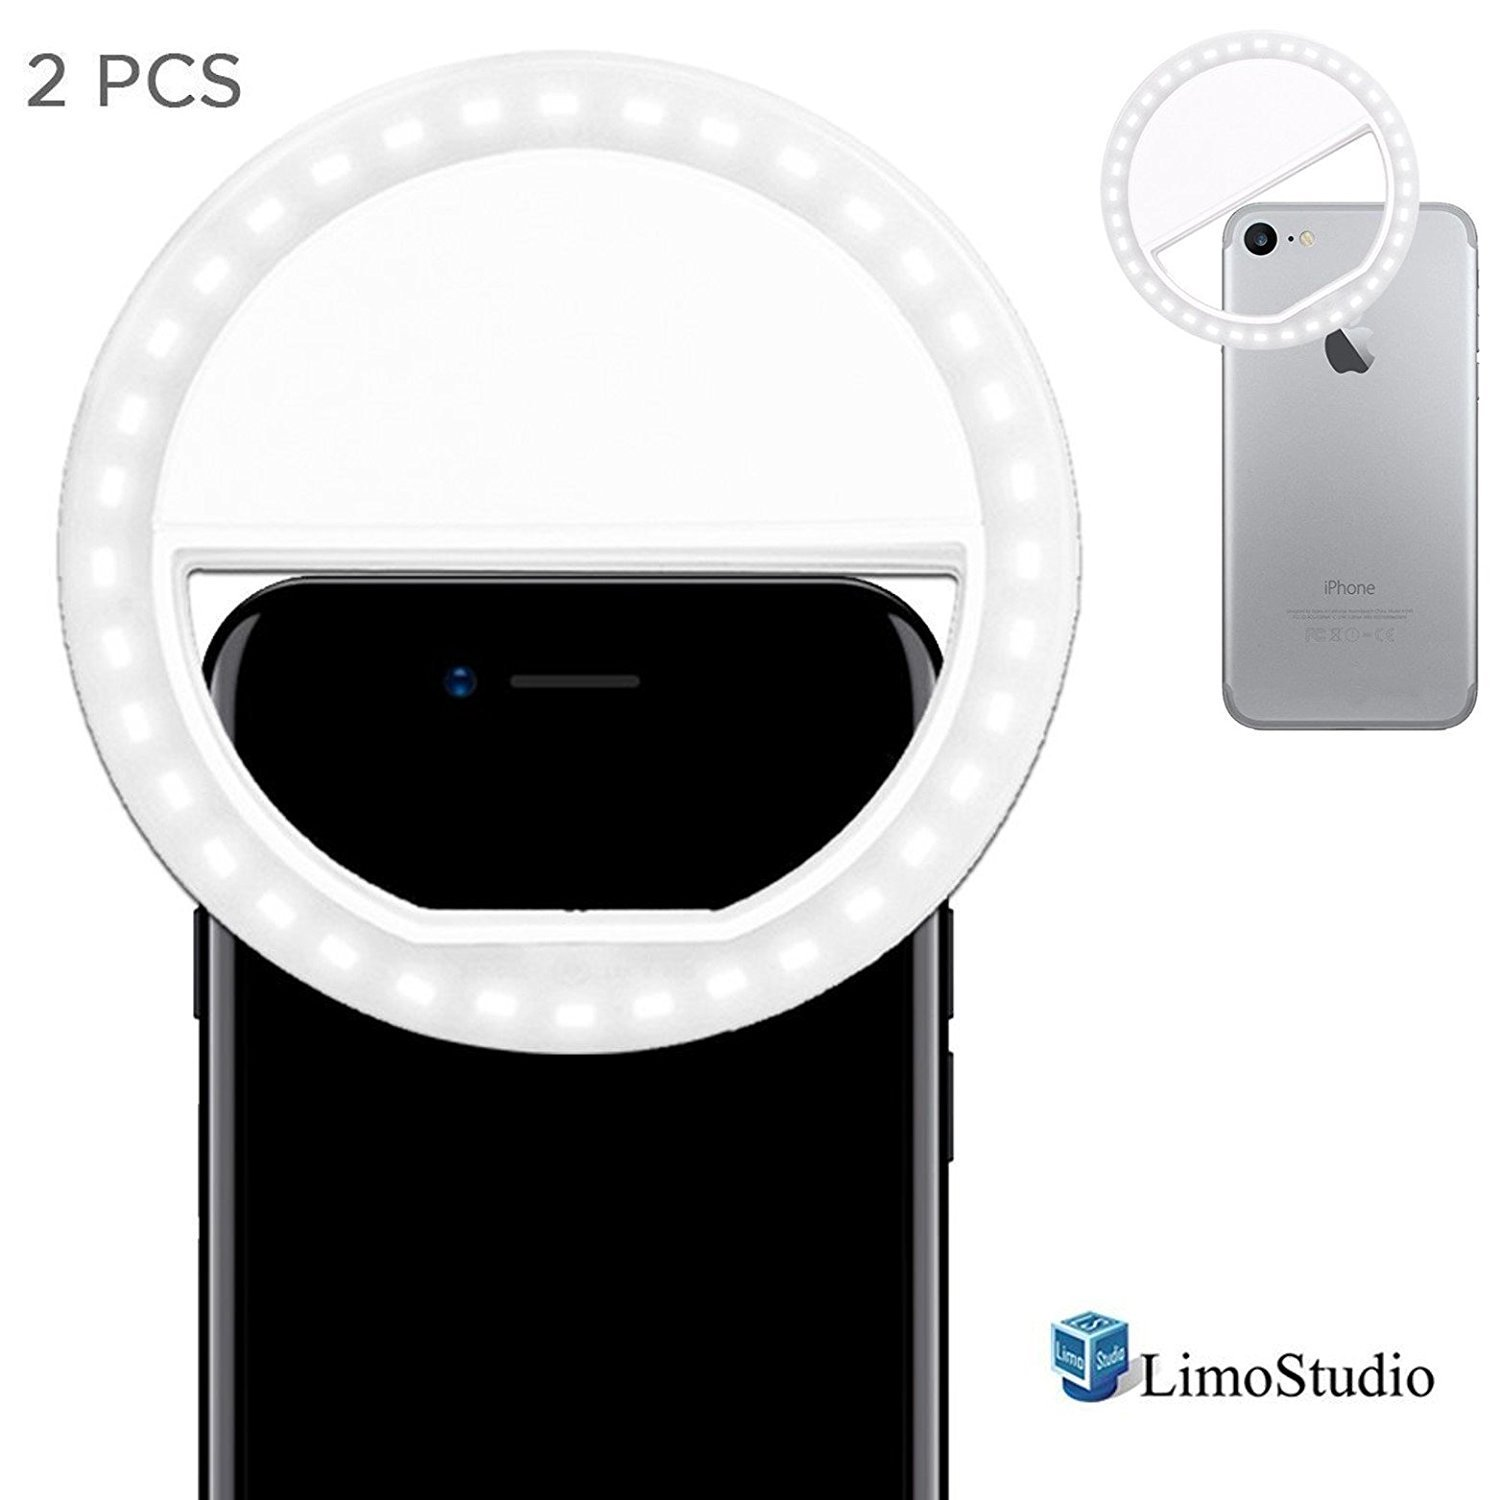 LimoStudio [2 PCS] 36 LED Portable Mini Ring Light for Cellphone Selfie LED Camera Light, for iPhone iPad Samsung Galaxy Smart Phone, White, Photo Studio, AGG1563